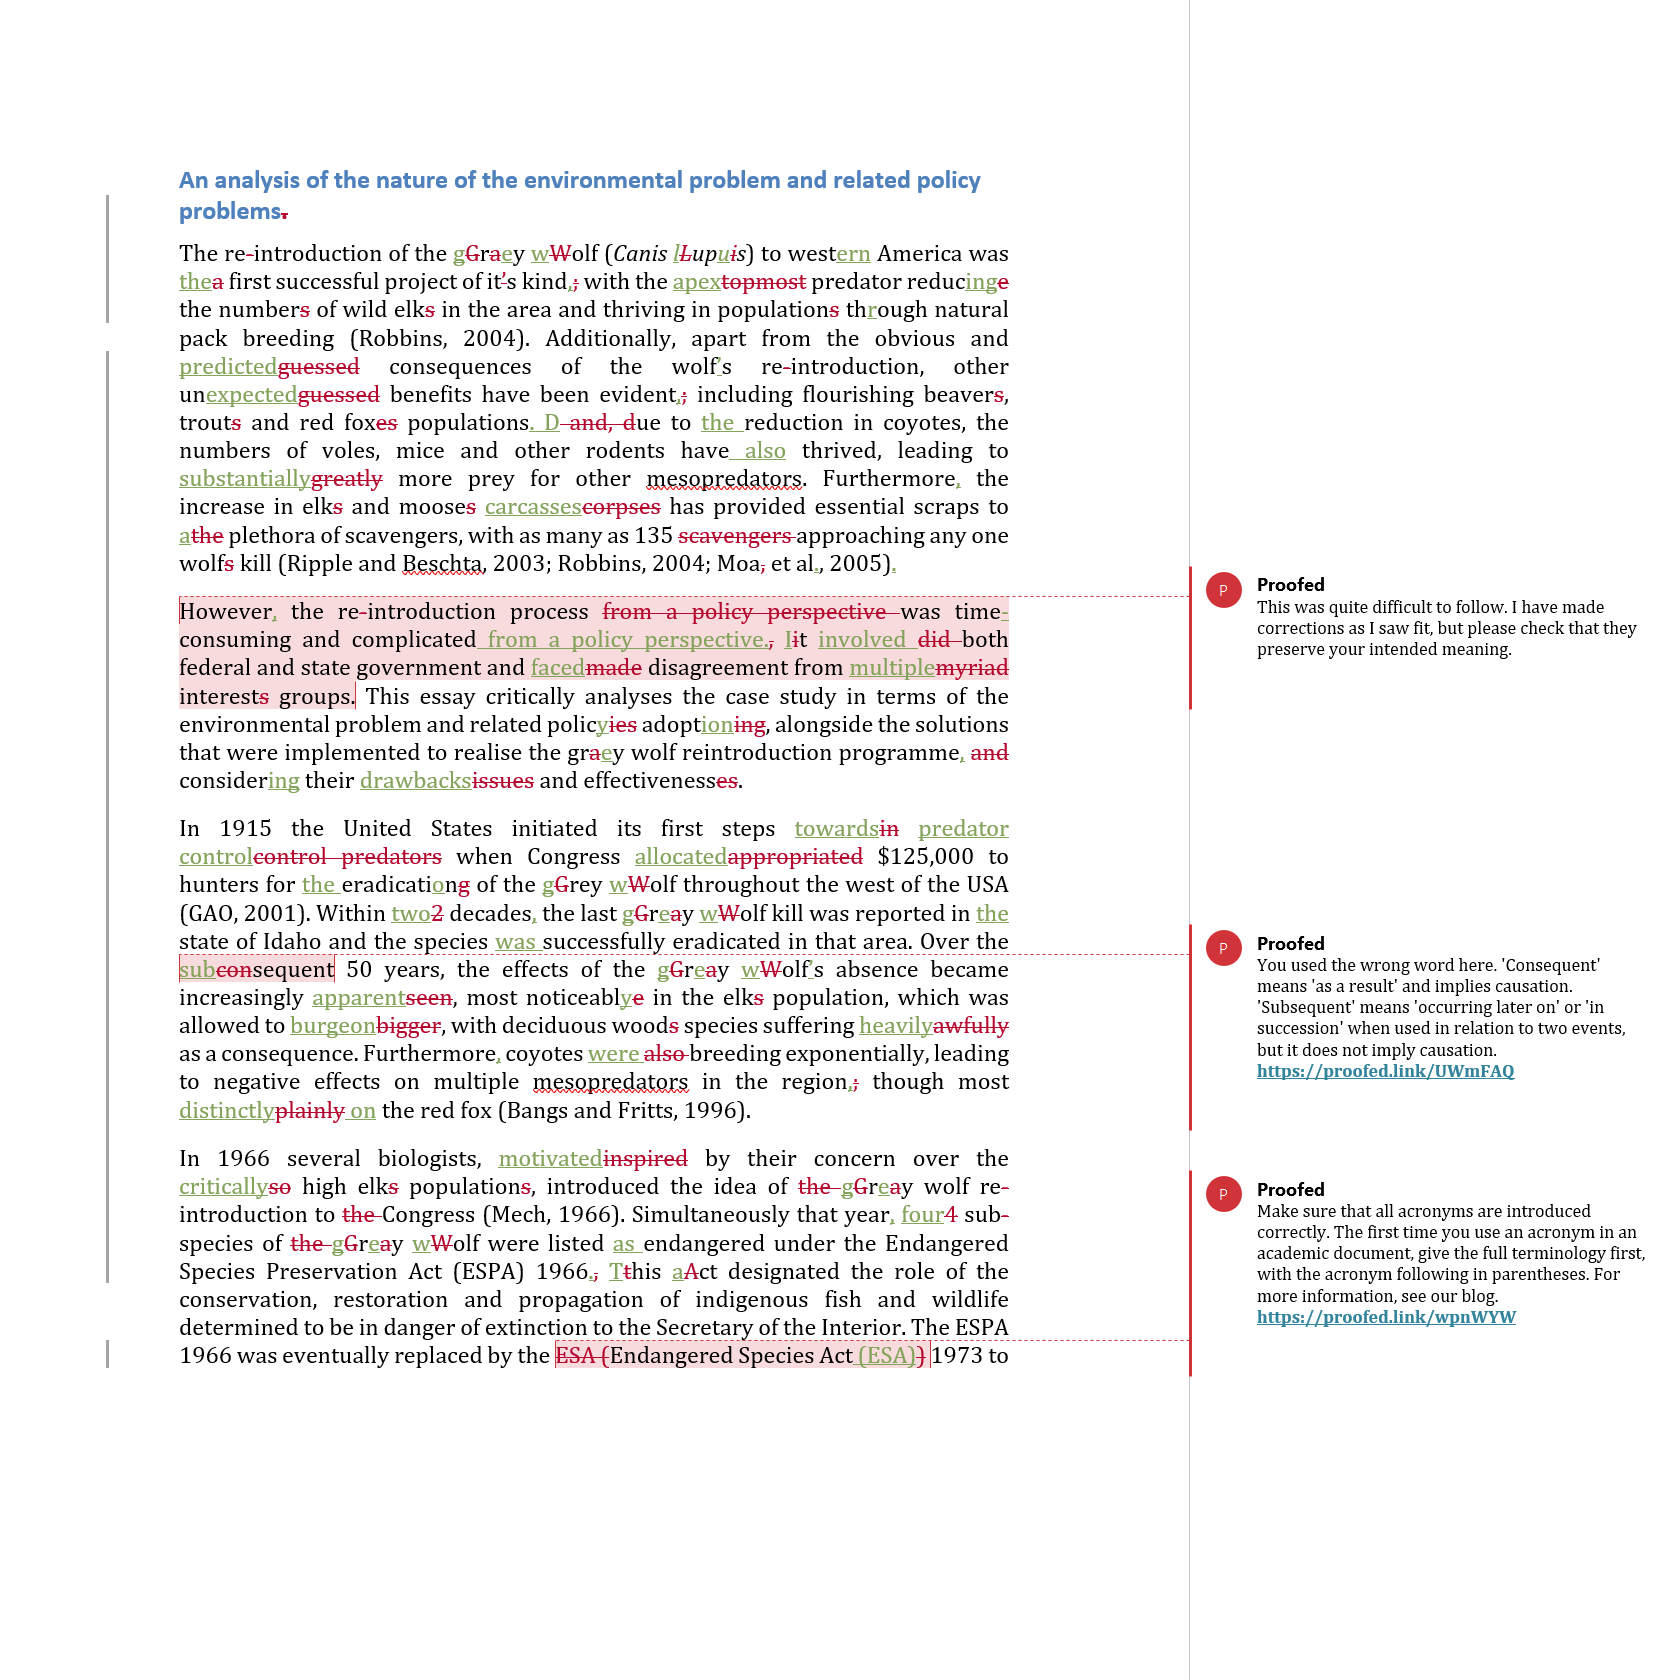 Assignment Proofreading Example (After Editing)